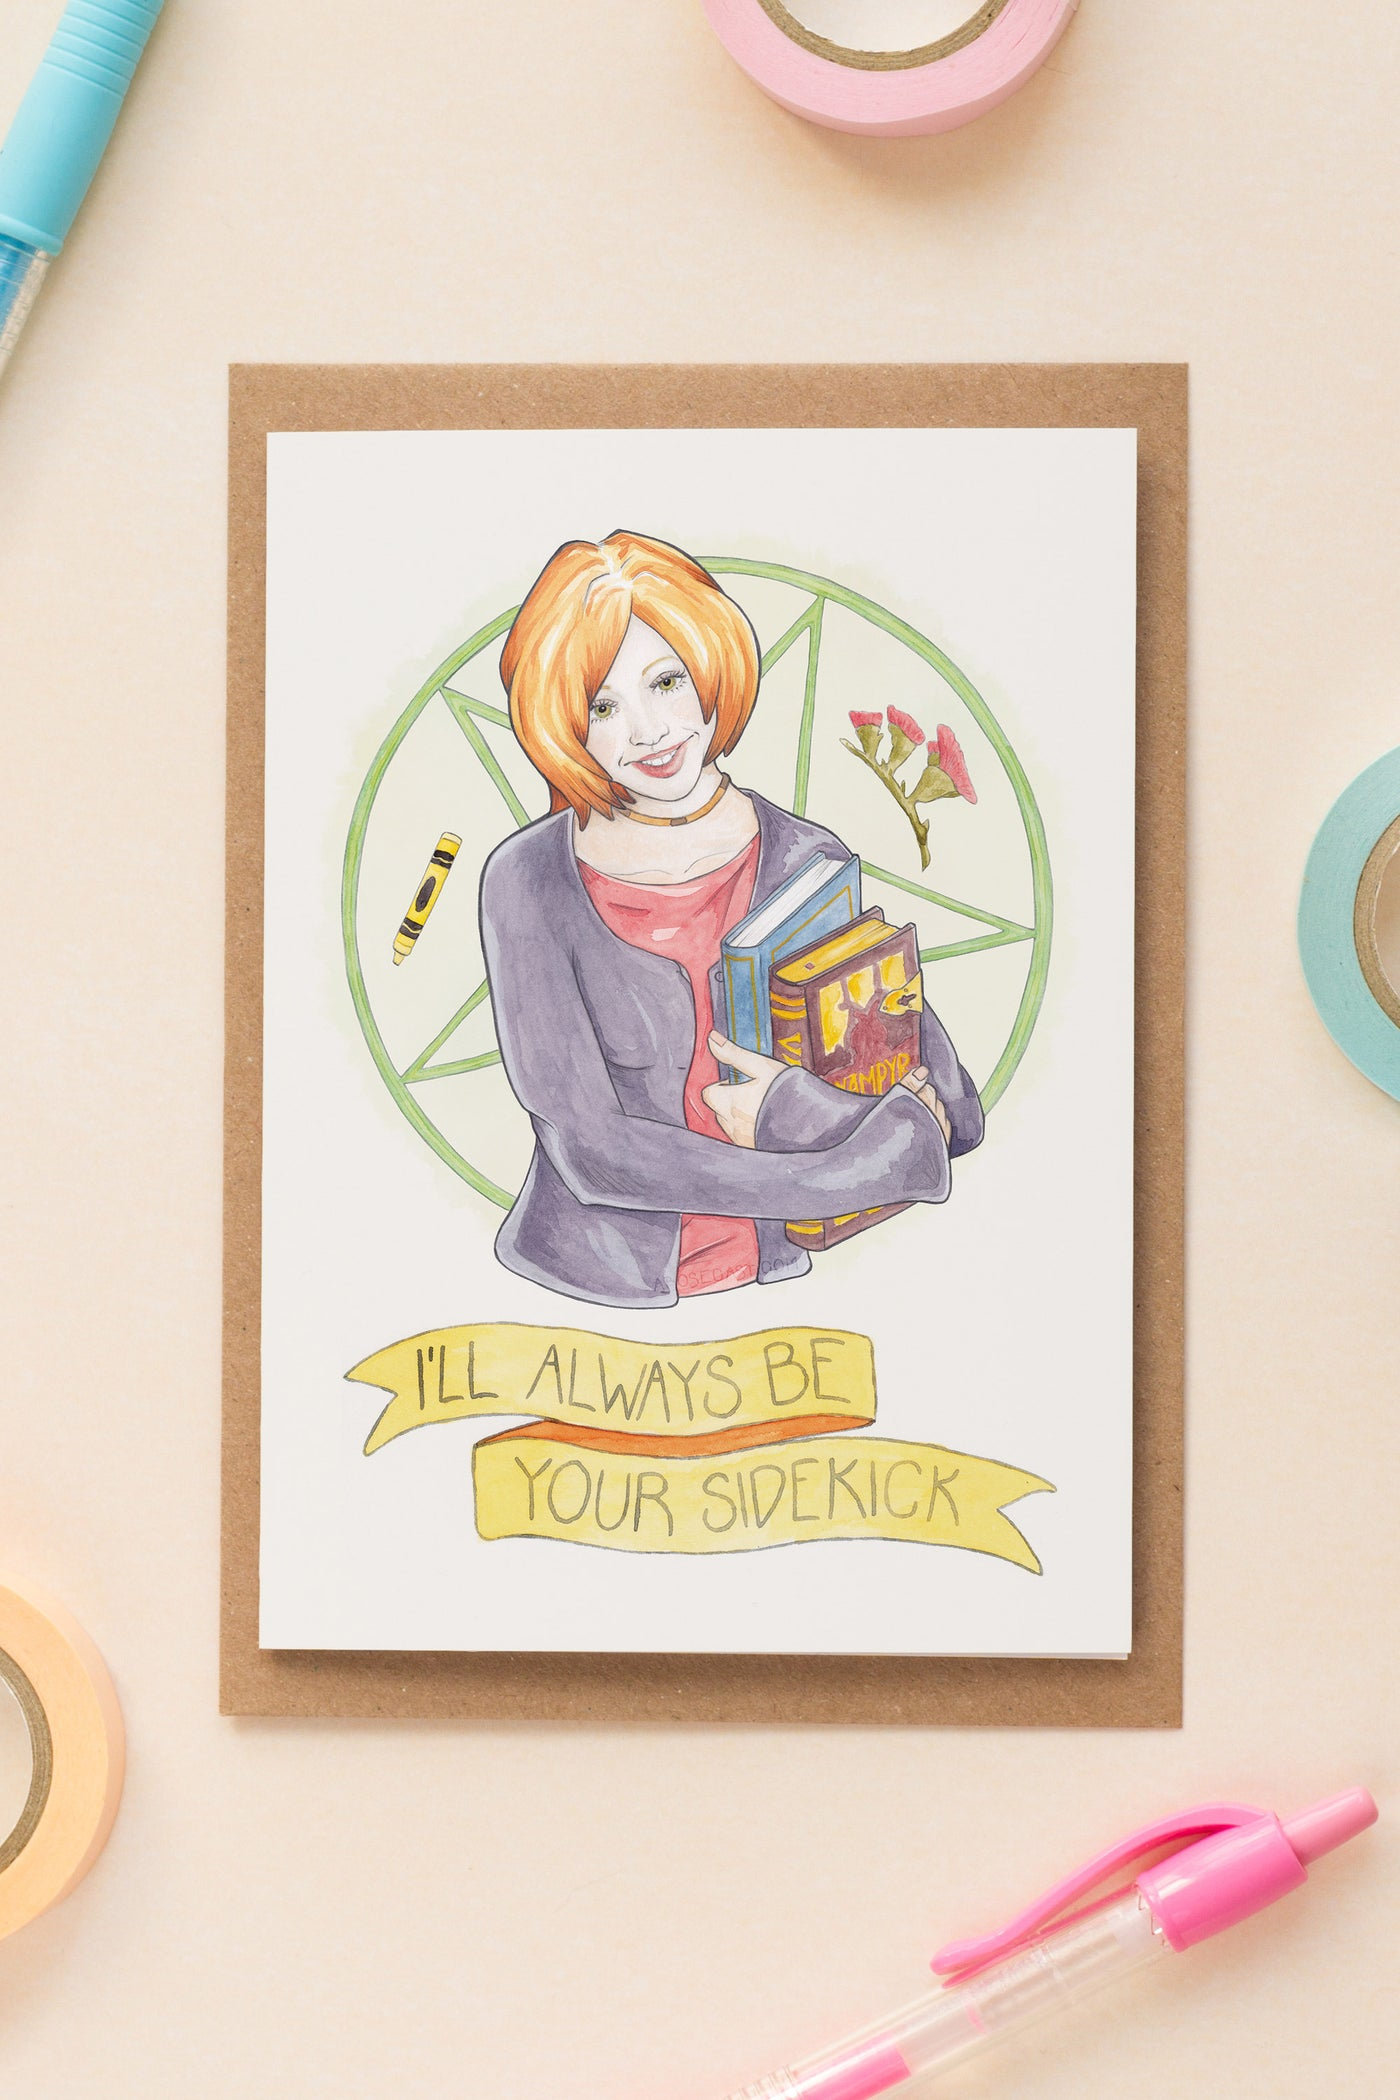 Willow Rosenberg of Buffy The Vampire Slayer Galentine's Day / Friendship Greeting Card